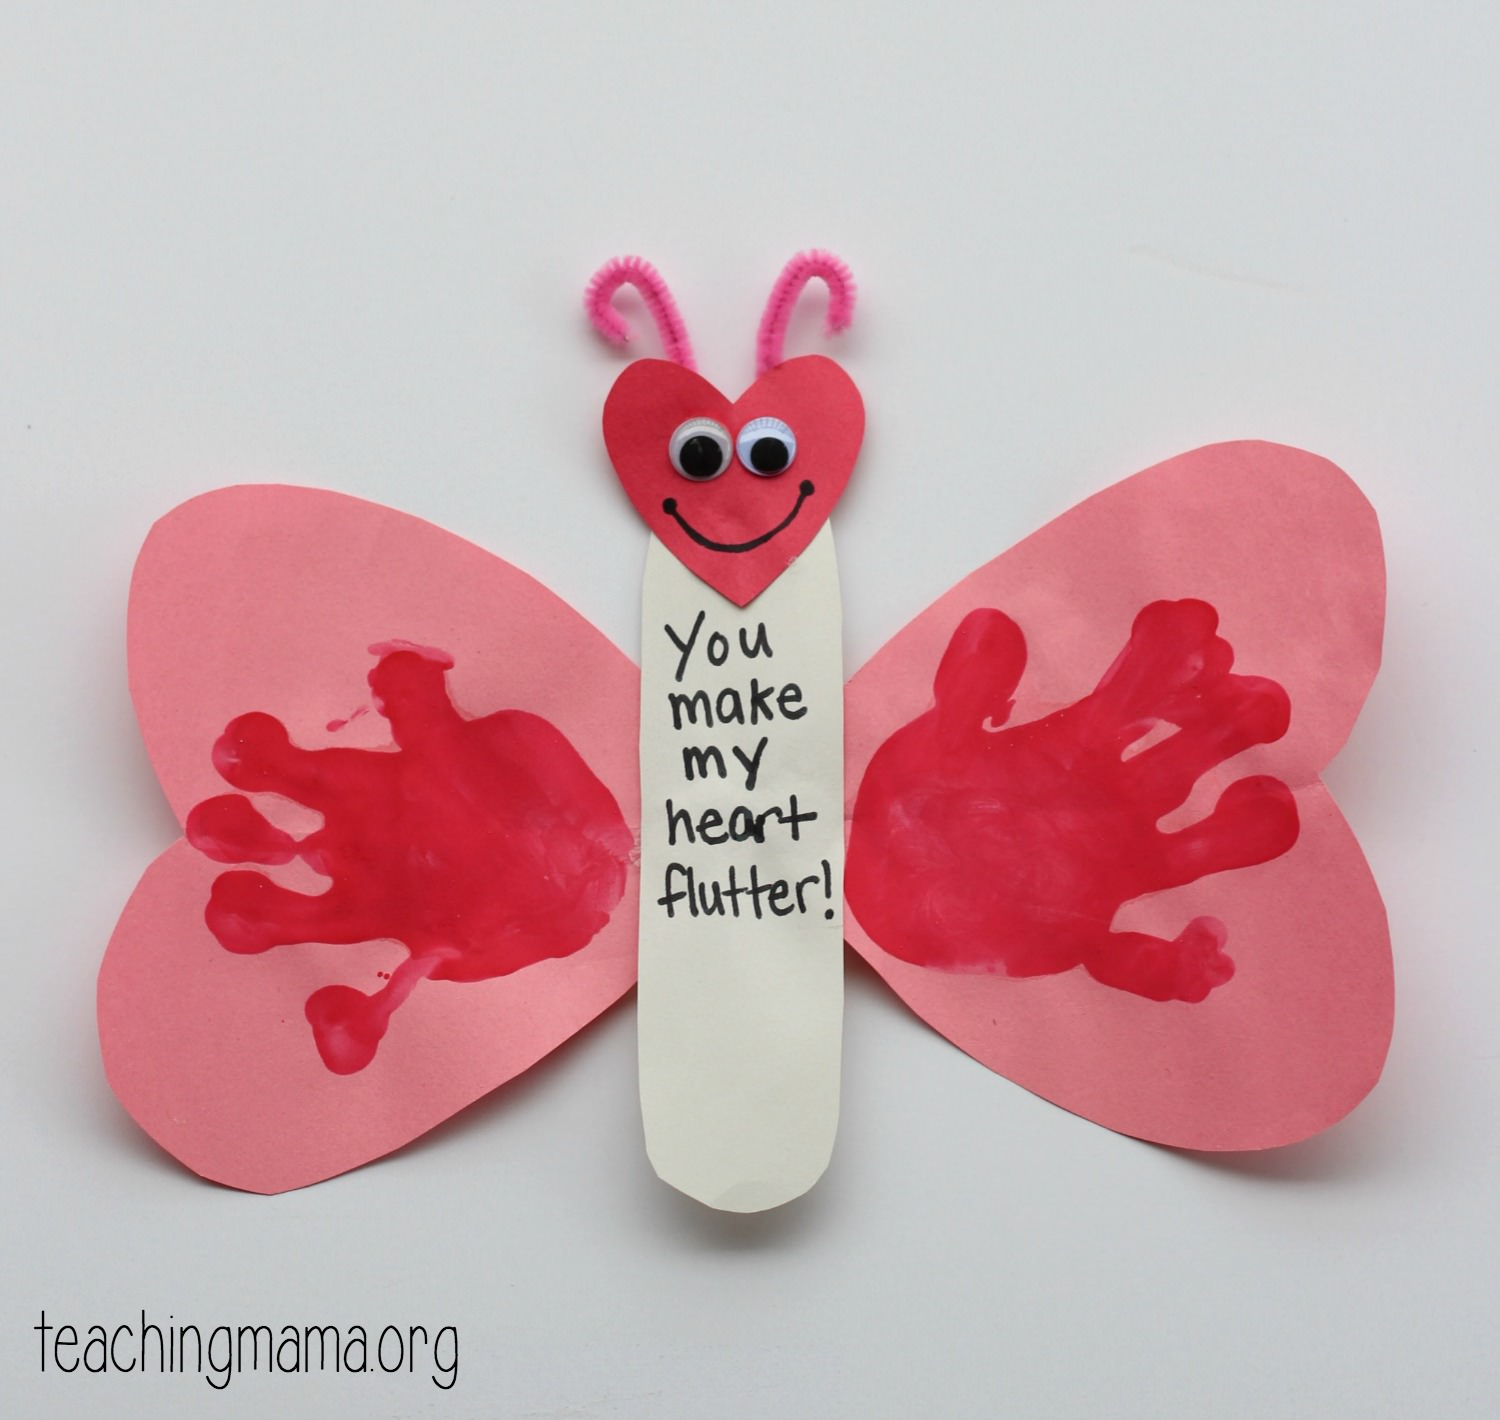 These Would Be Cute Valentines To Pass Out Or Even Great For Classroom  Decorations!